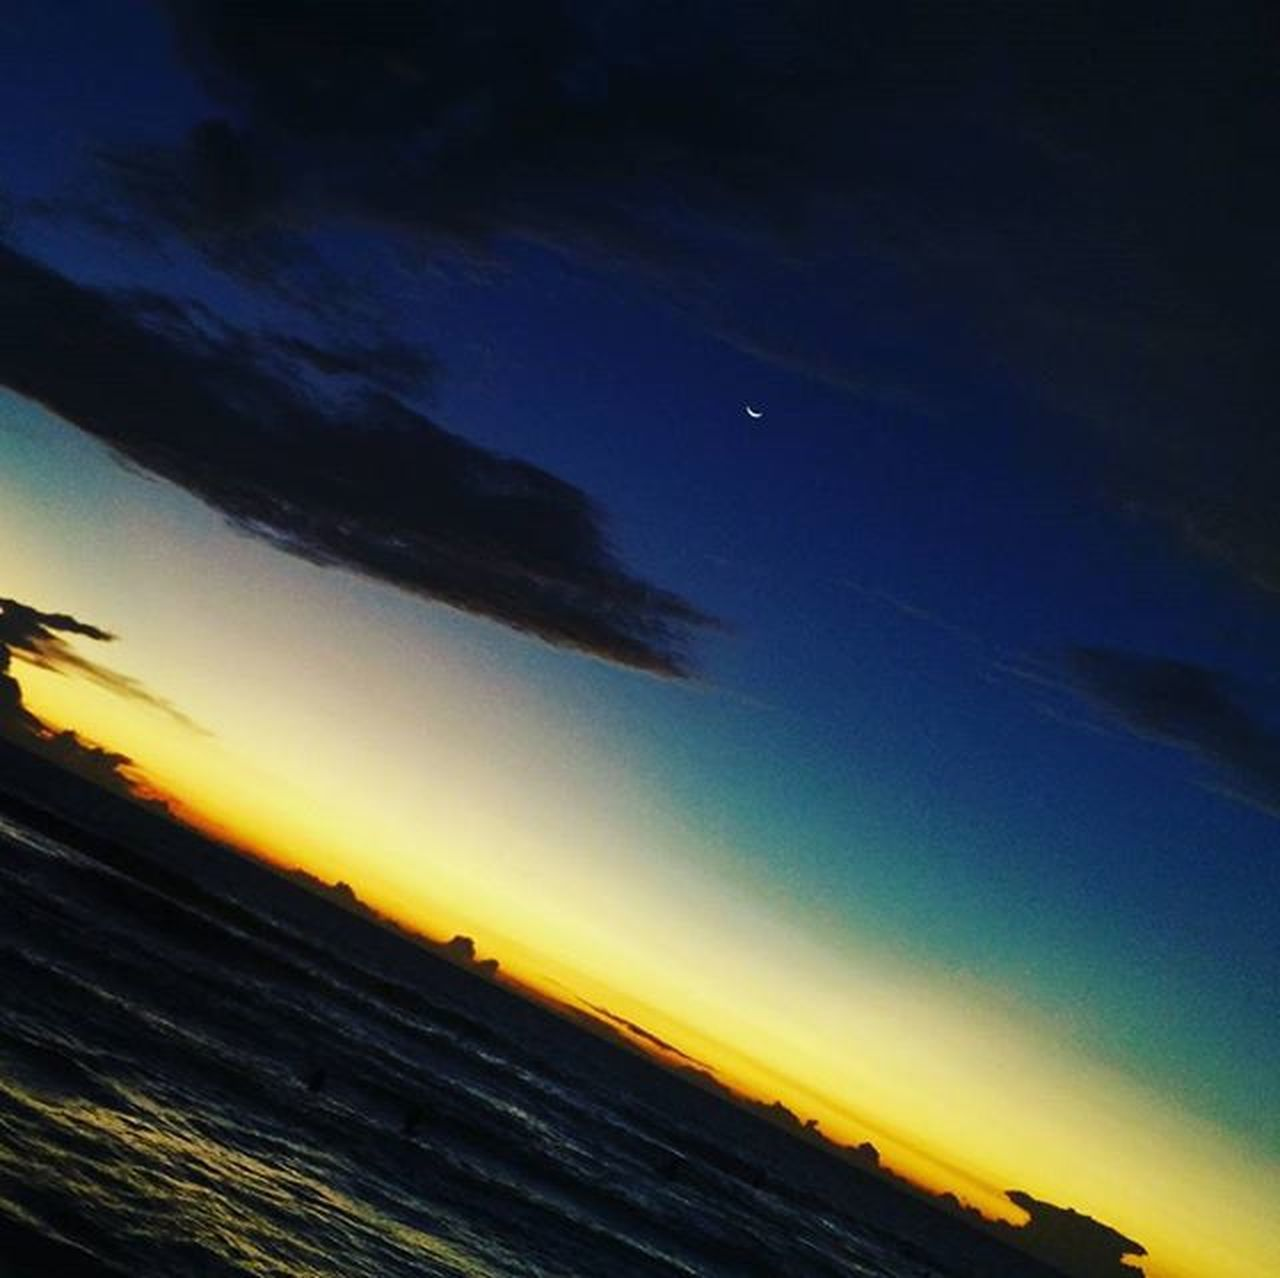 scenics, tranquil scene, nature, sky, no people, beauty in nature, night, outdoors, blue, sunset, star - space, moon, sea, astronomy, space